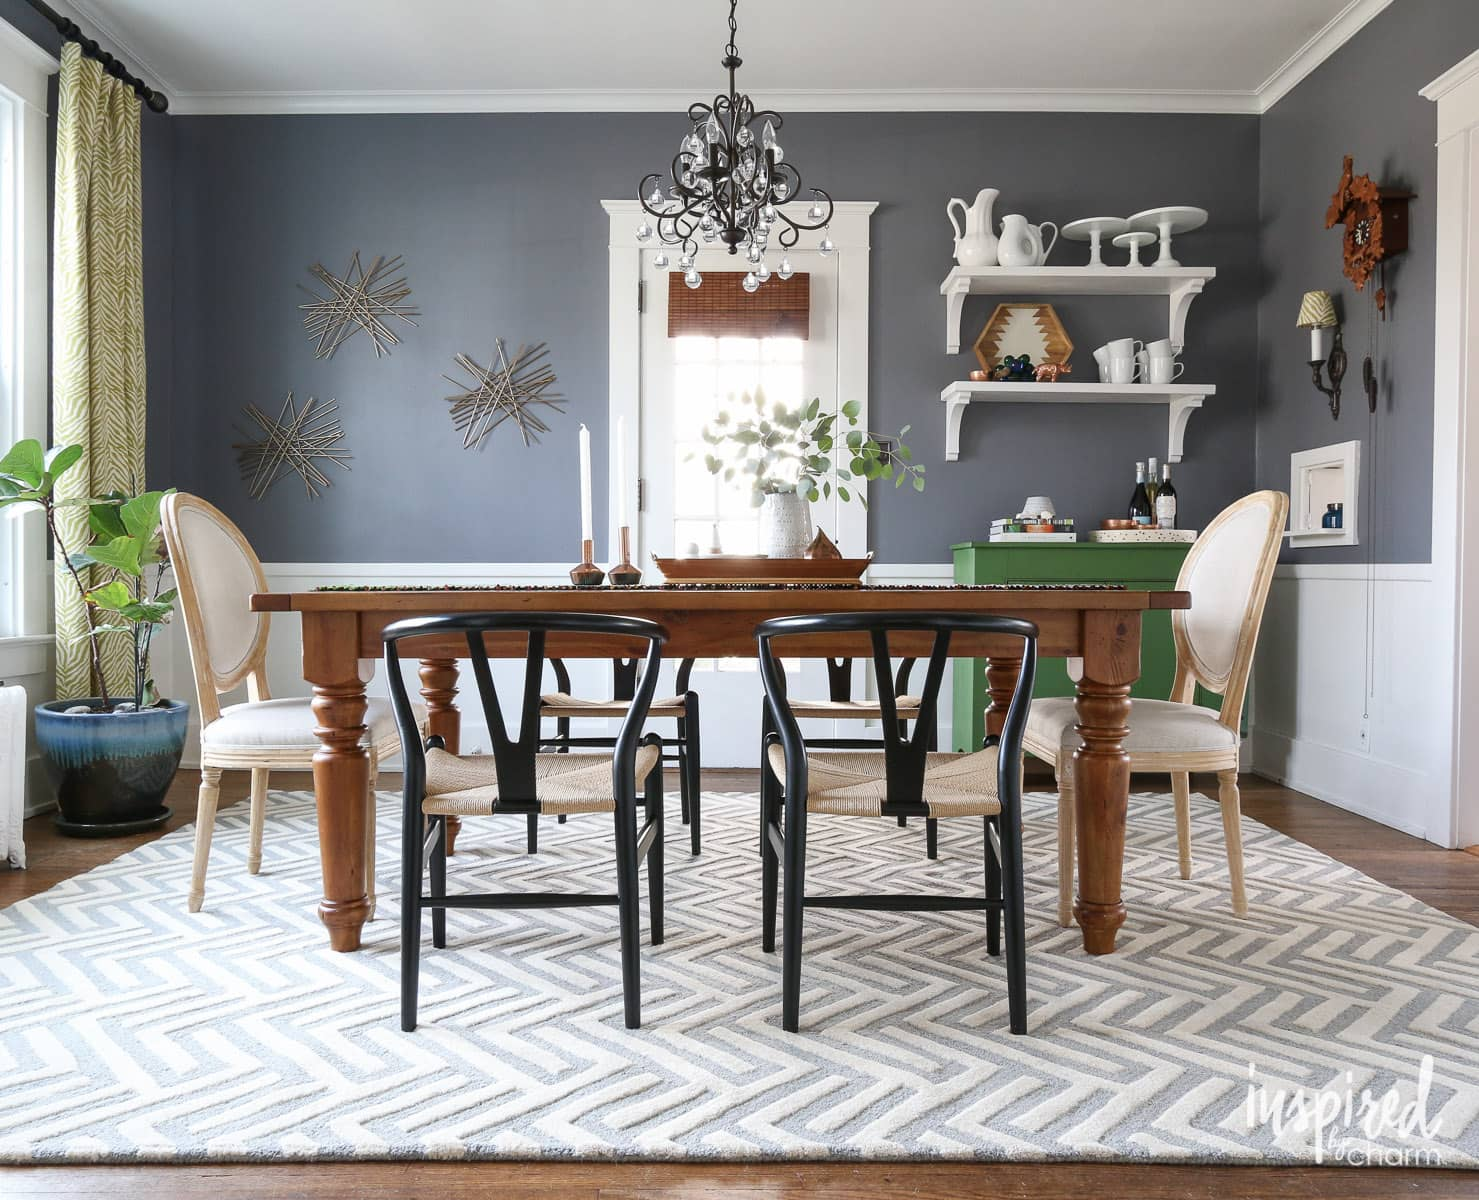 Beau Dining Room Rug | Inspiredbycharm.com